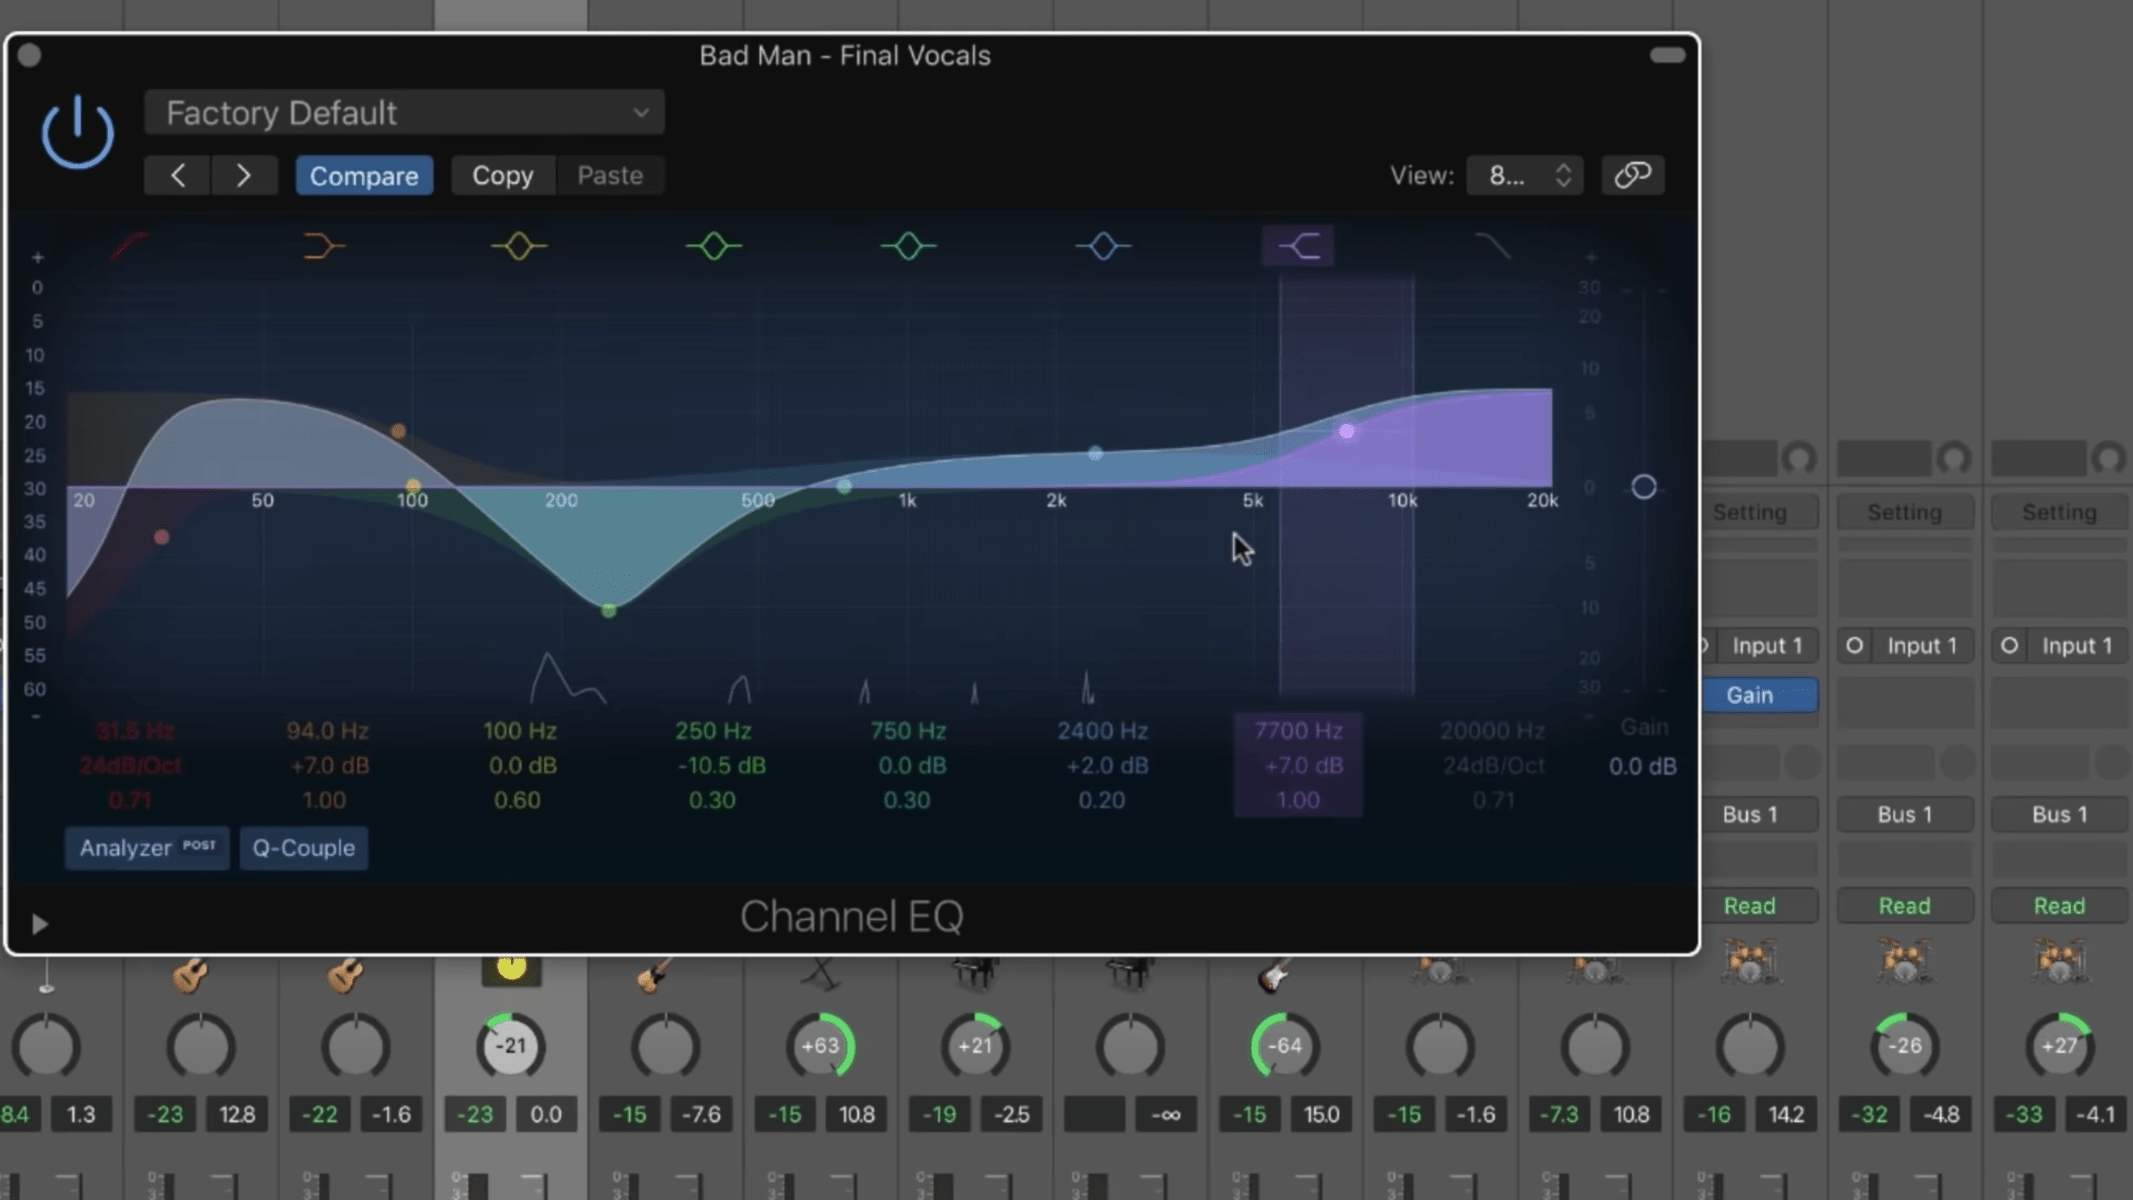 WAVES PLUGIN GEQ BAIXAR EQUALIZER INTRODUCES GRAPHIC